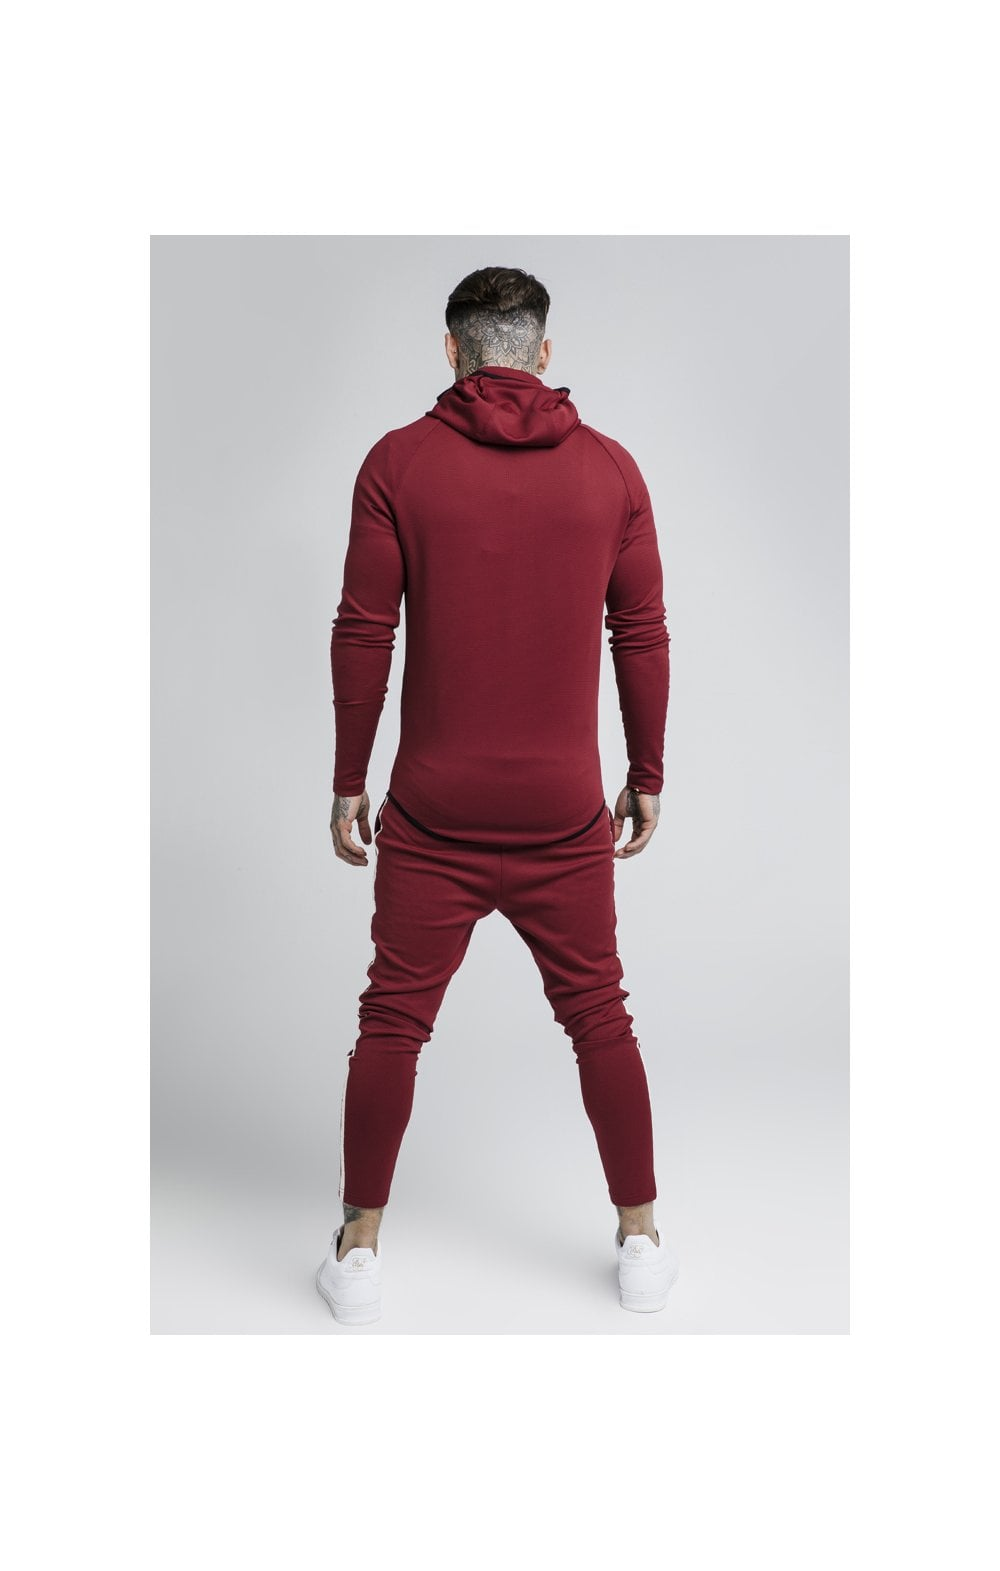 Load image into Gallery viewer, SikSilk Tech Athlete Zip Through Hoodie – Burgundy (5)